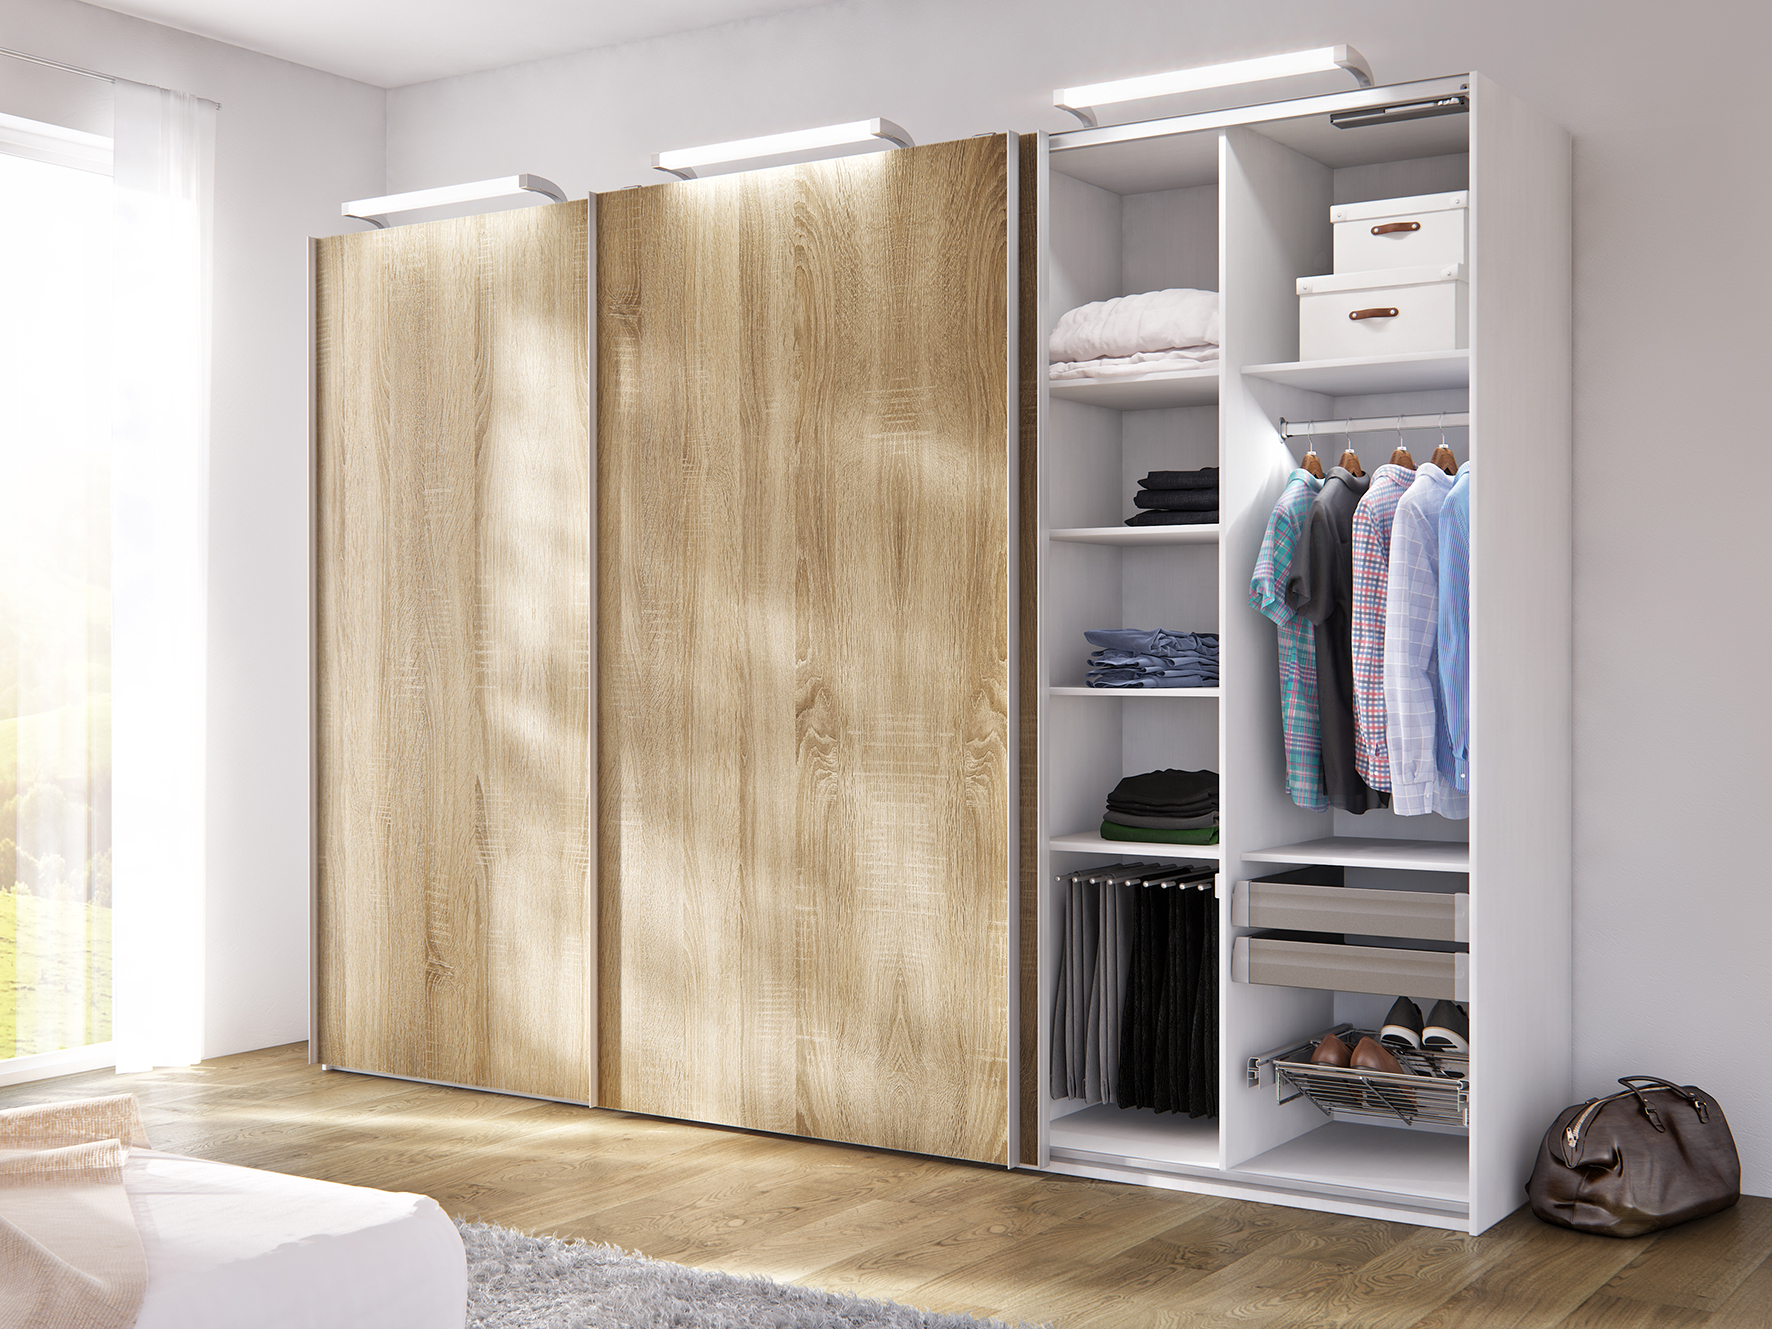 Three-door solution with the Slido Classic 35 VF S and cleverly used storage space in the cabinet.